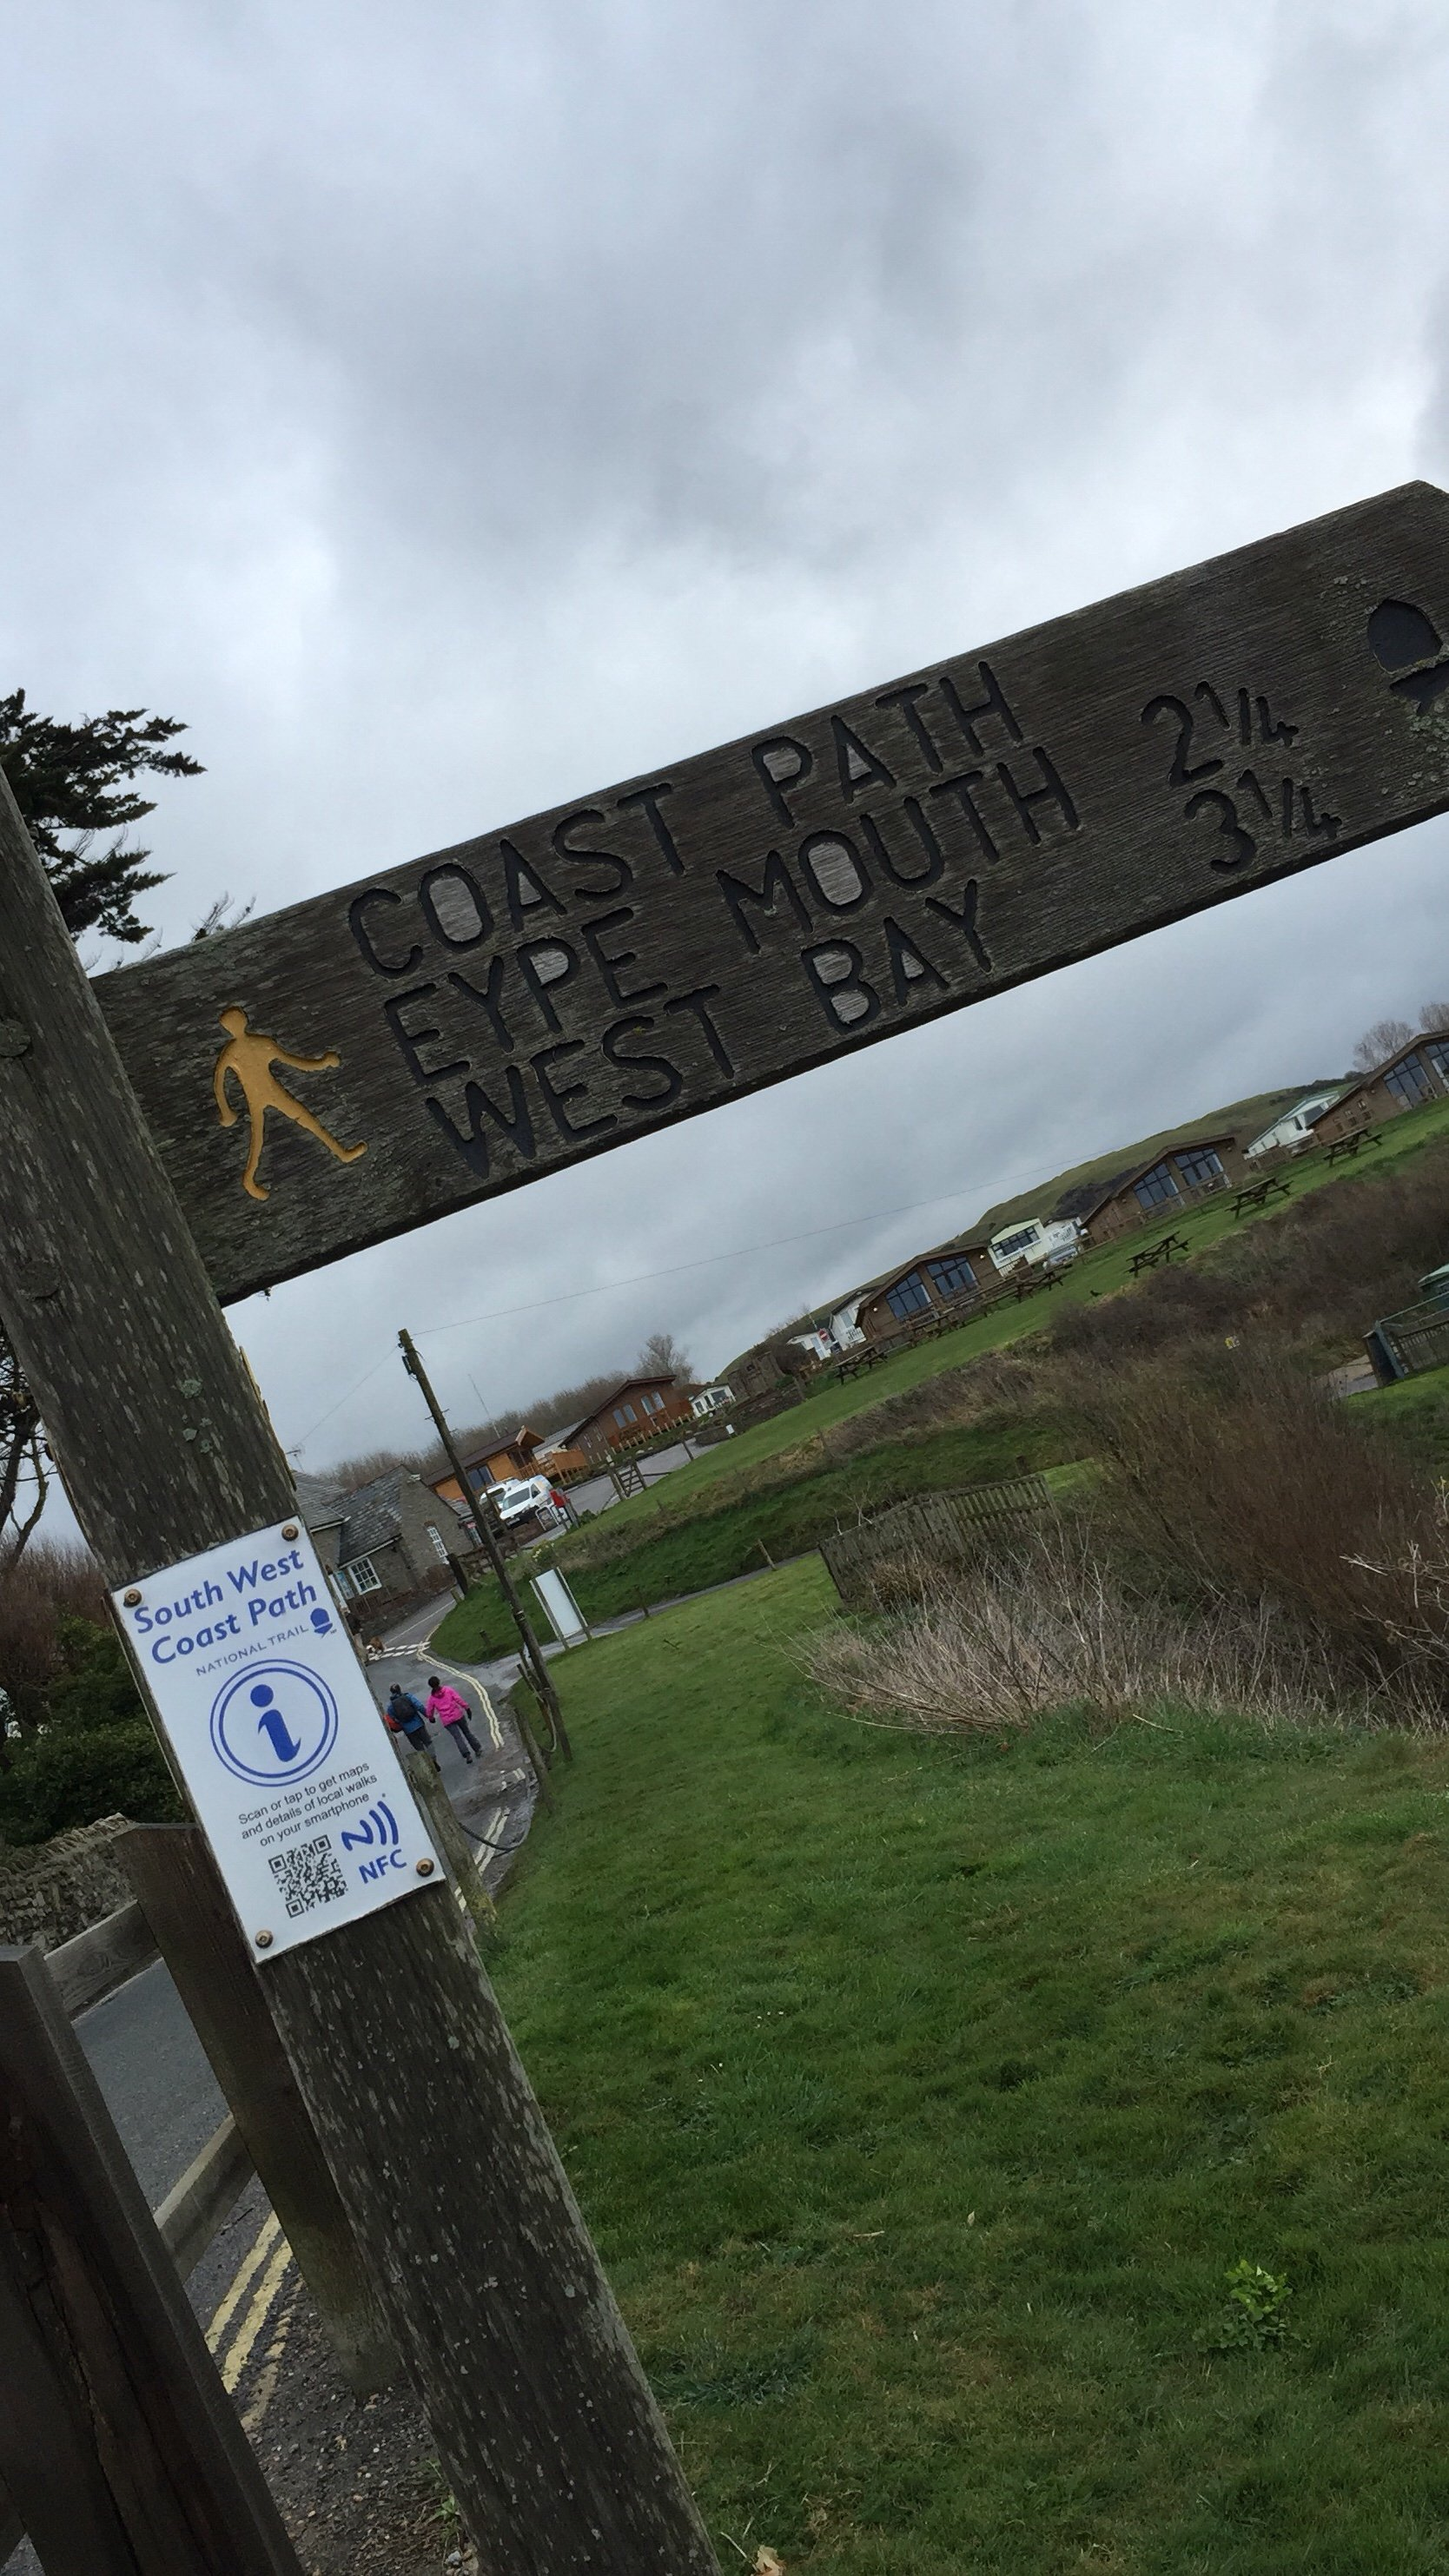 Seatown, Dorset - the starting point of our South West Coastal Path walk